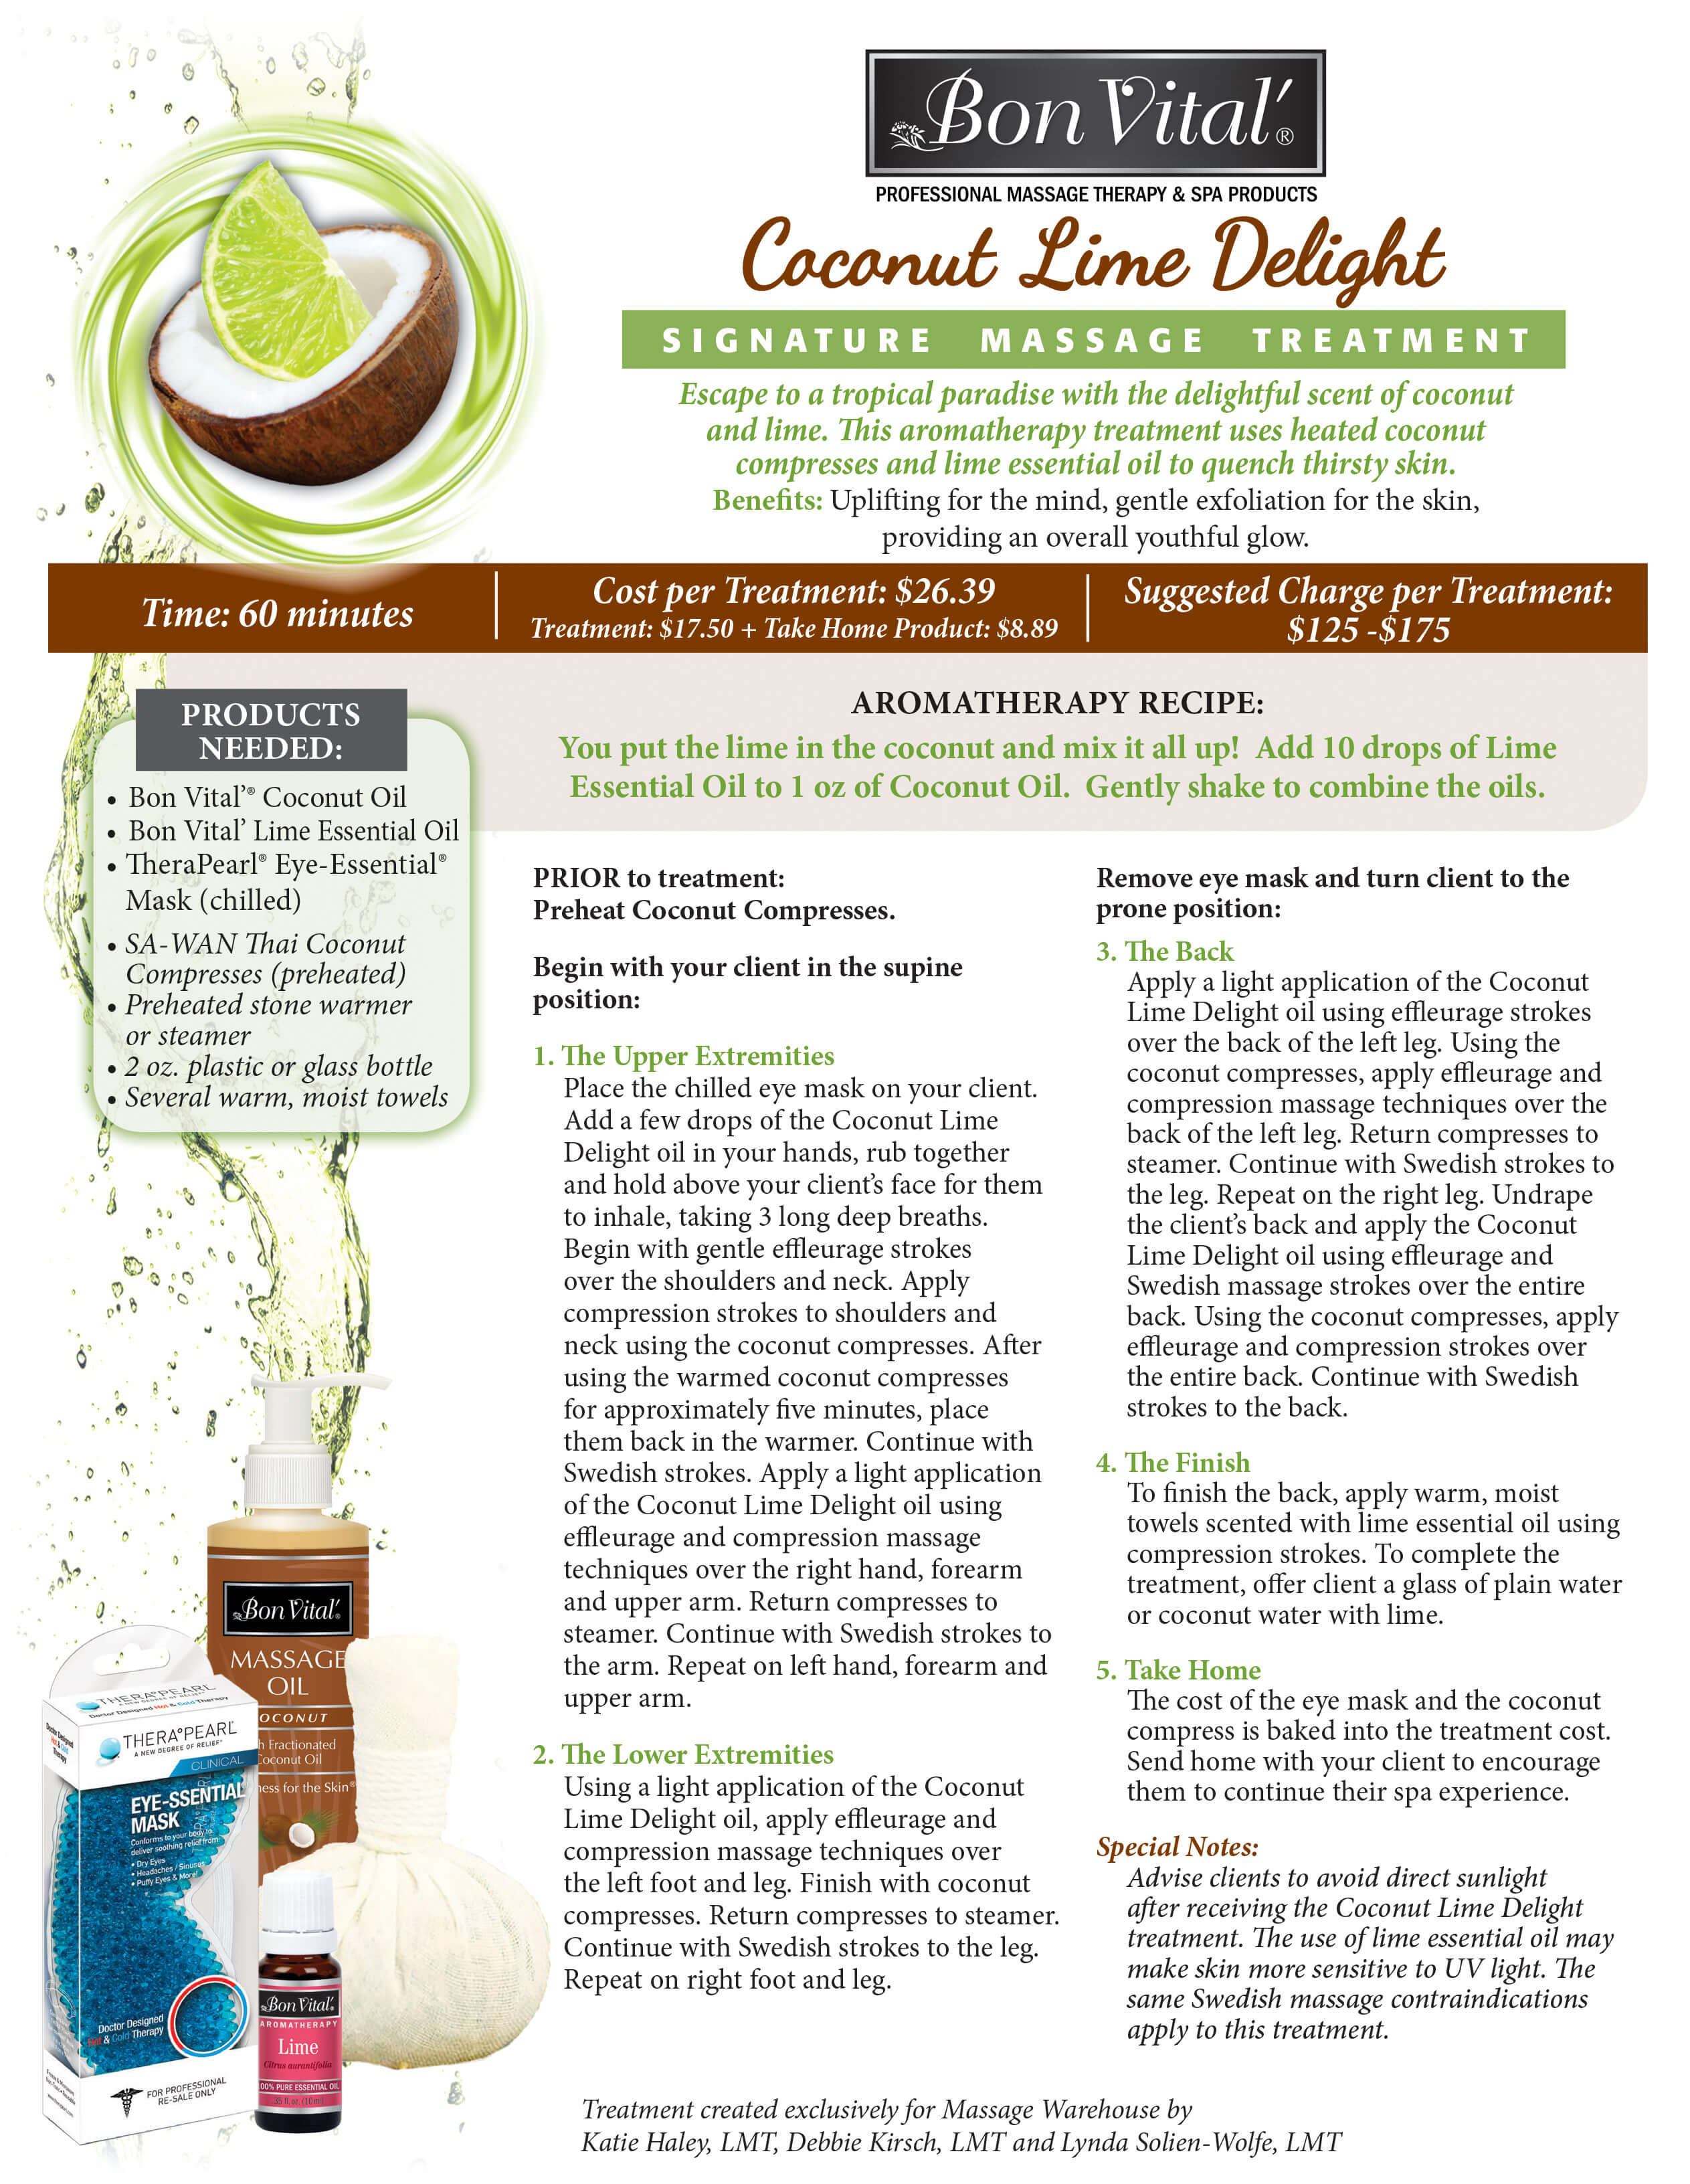 Coconut Lime Delight